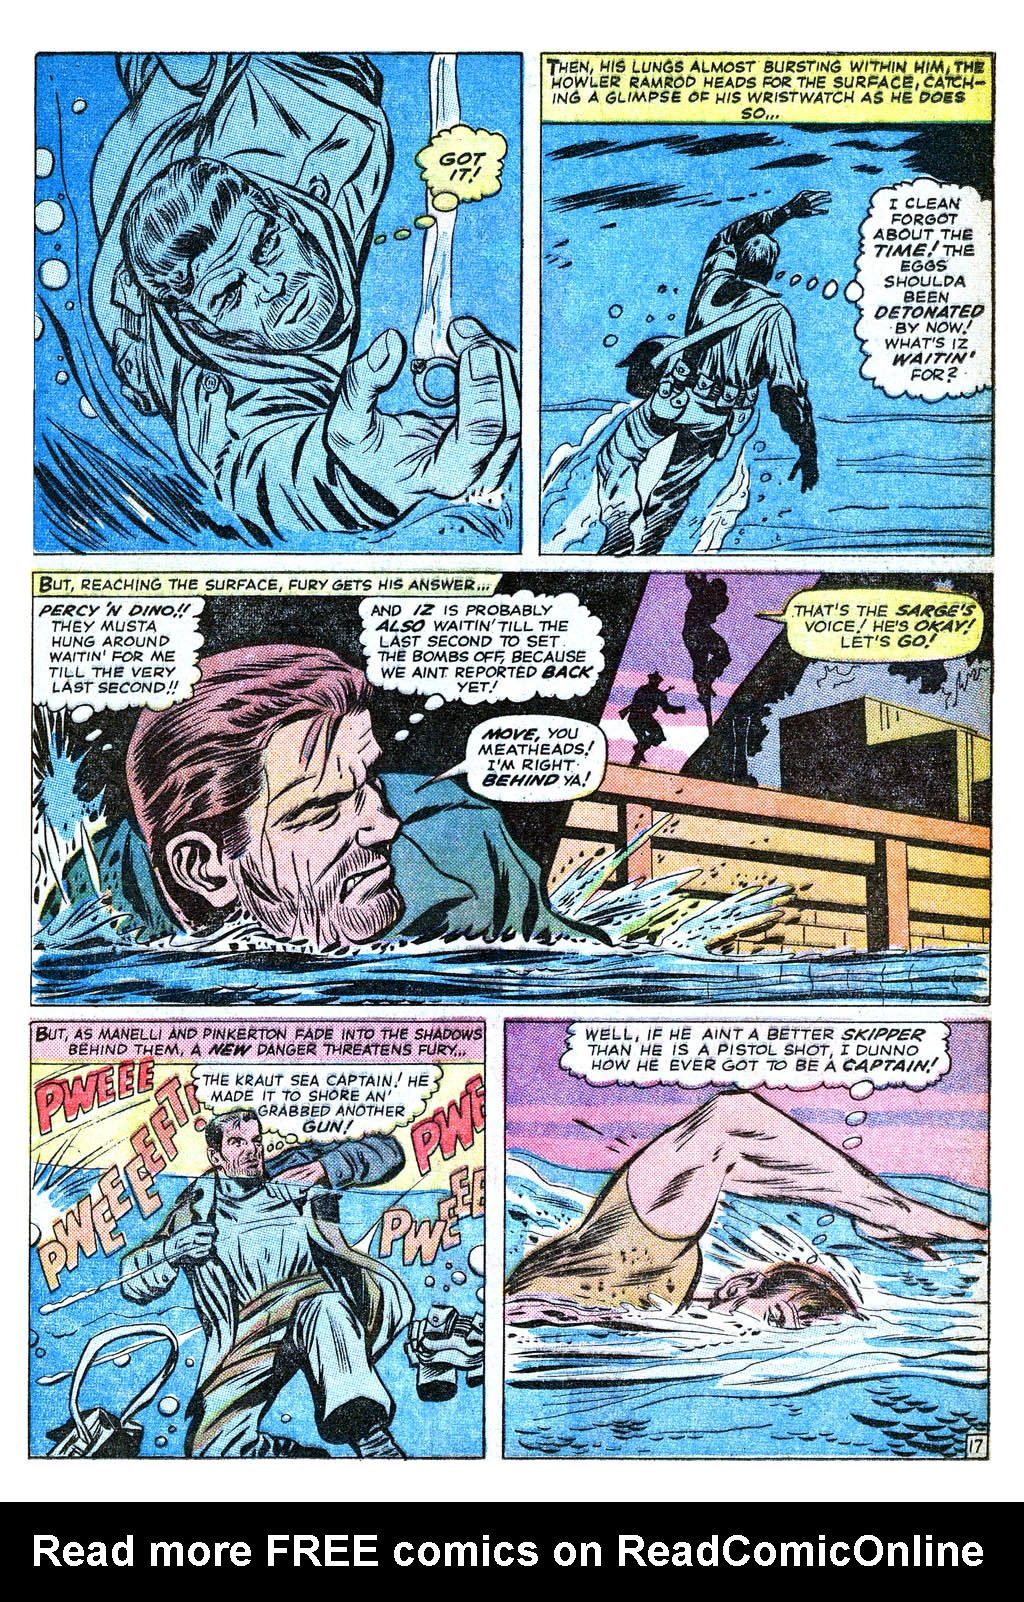 Read online Sgt. Fury comic -  Issue #18 - 25